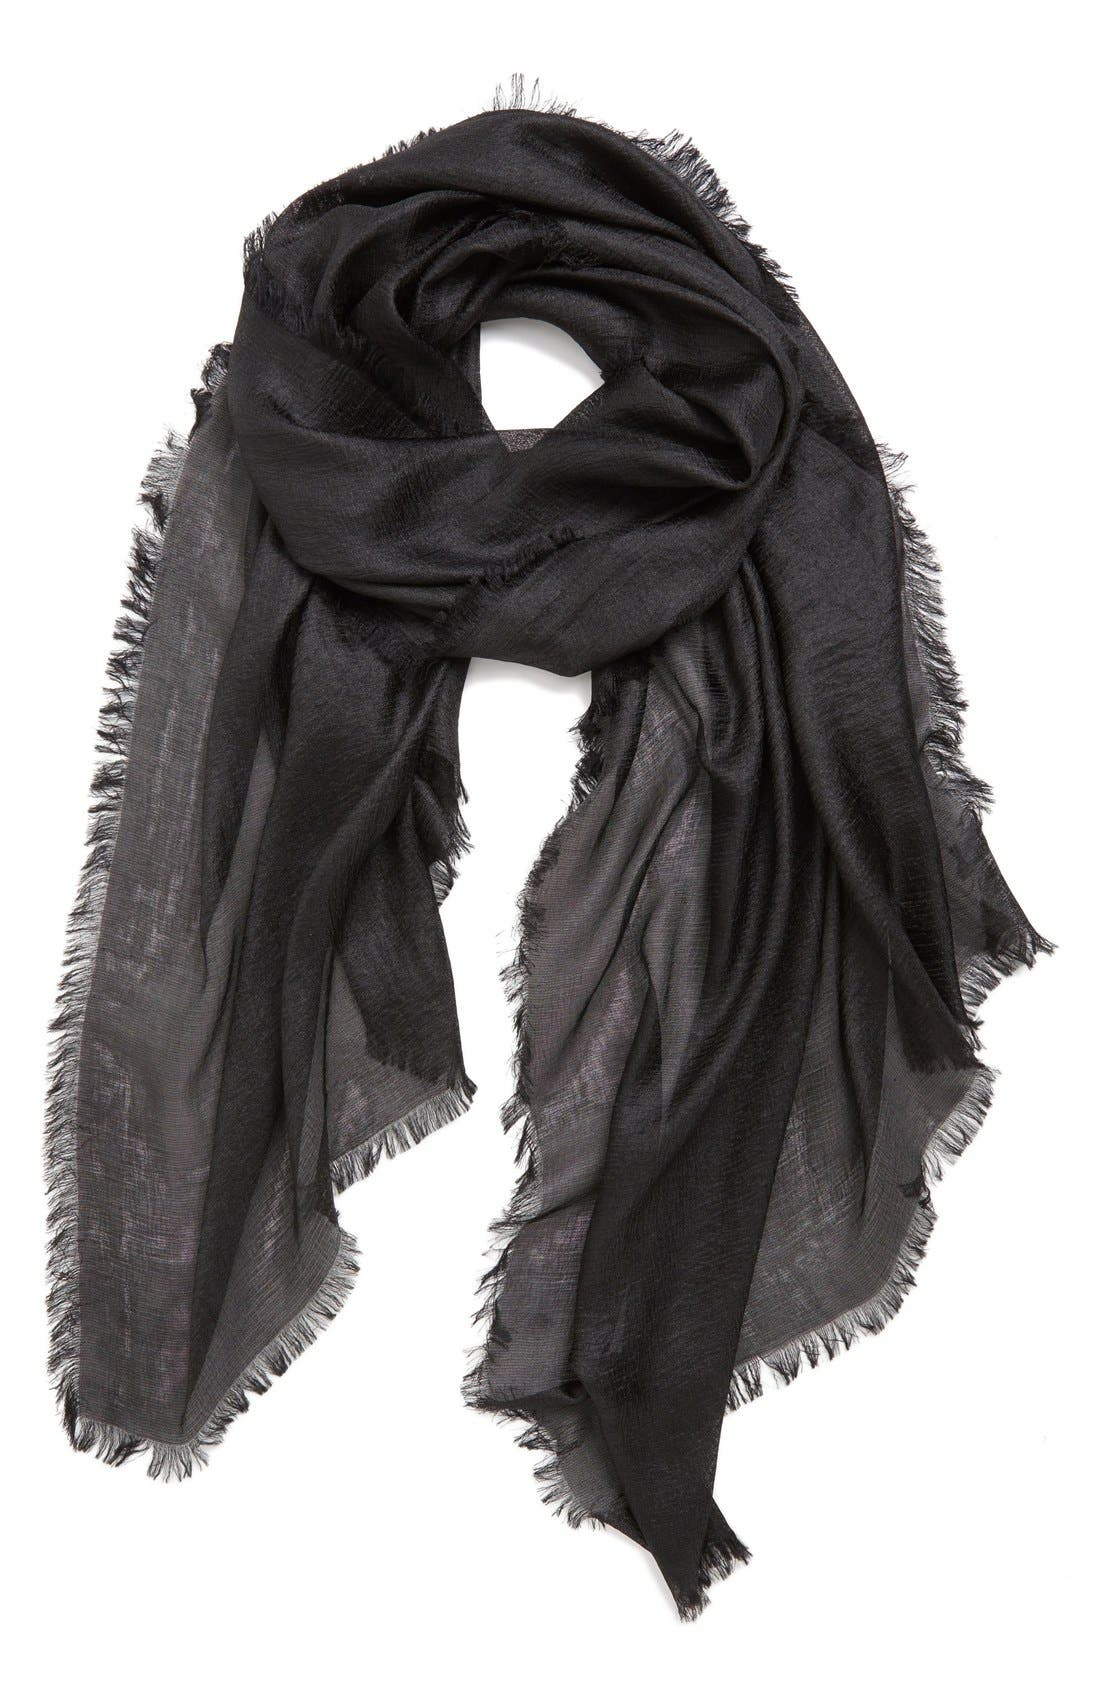 'Radiance' Eyelash Fringe Wrap,                         Main,                         color, BLACK